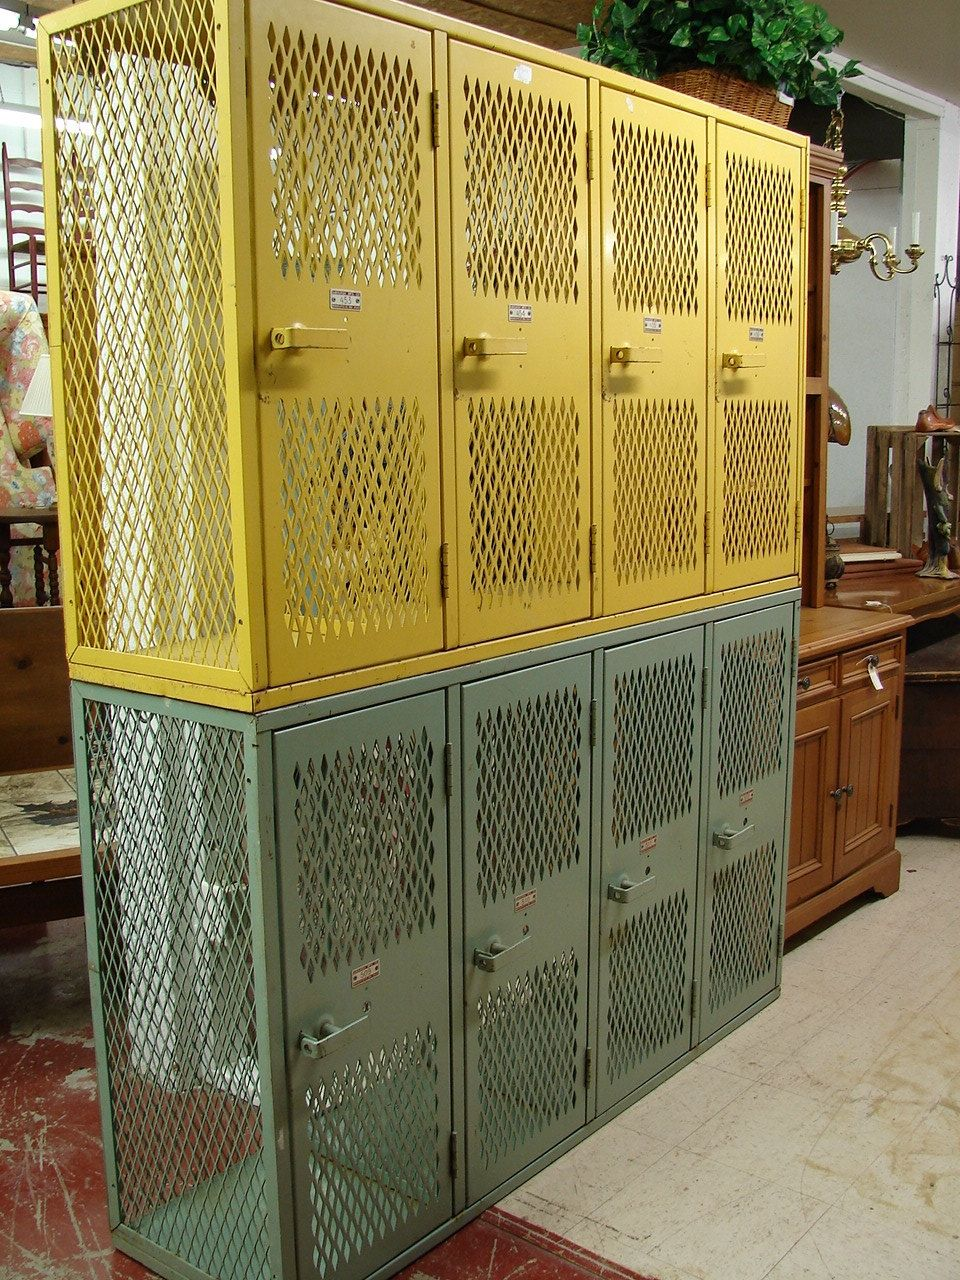 metal storage cabinet yellow. Antique Vintage Reclaimed Architectural Industrial Yellow Or Blue Paint Cabinet Steel Metal Storage Locker N